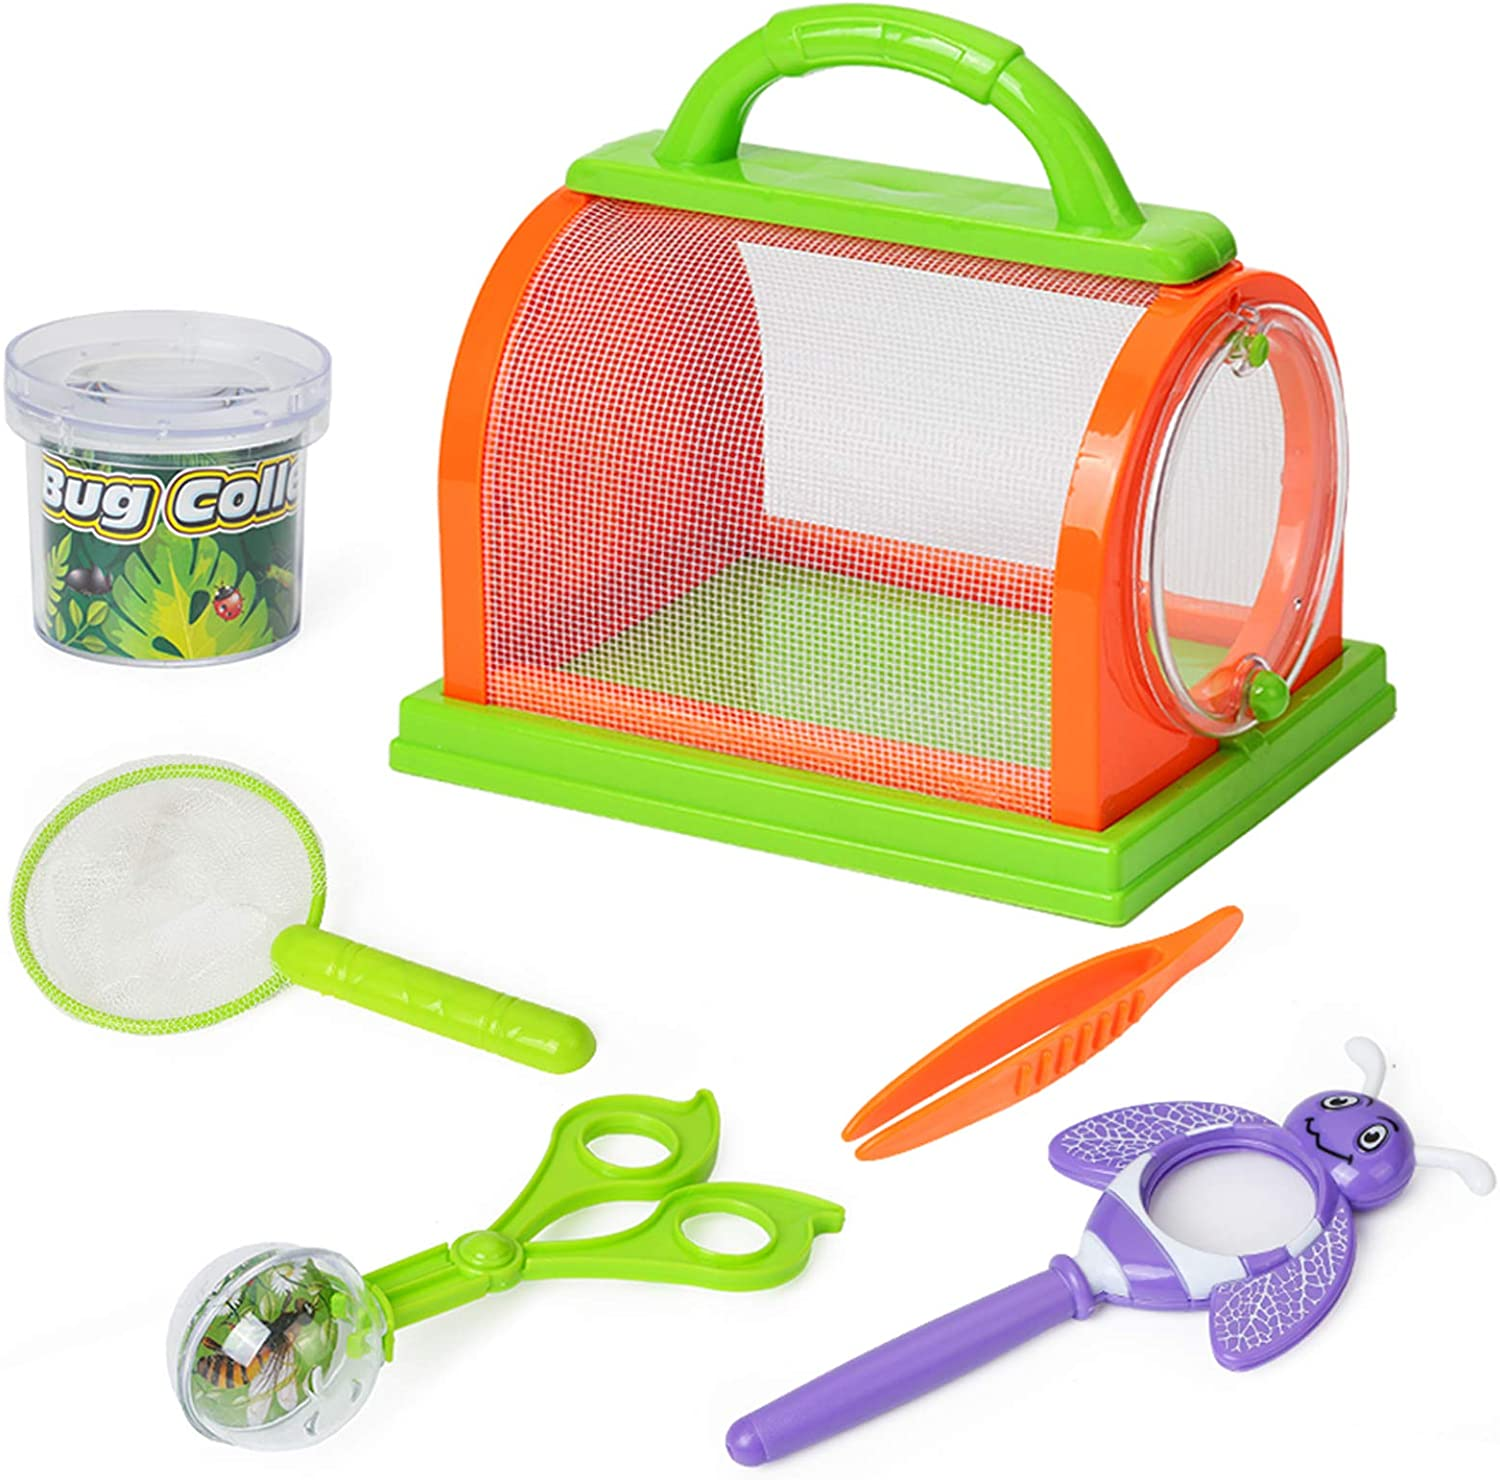 Kids Bug Catcher Kit for Outdoor Explorer Bug Collection, Magnifying Glass, Butterfly Net, Critter Case, Tweezers and Bug Observation Container for Boys and Girls Toddlers Science Educational Playset